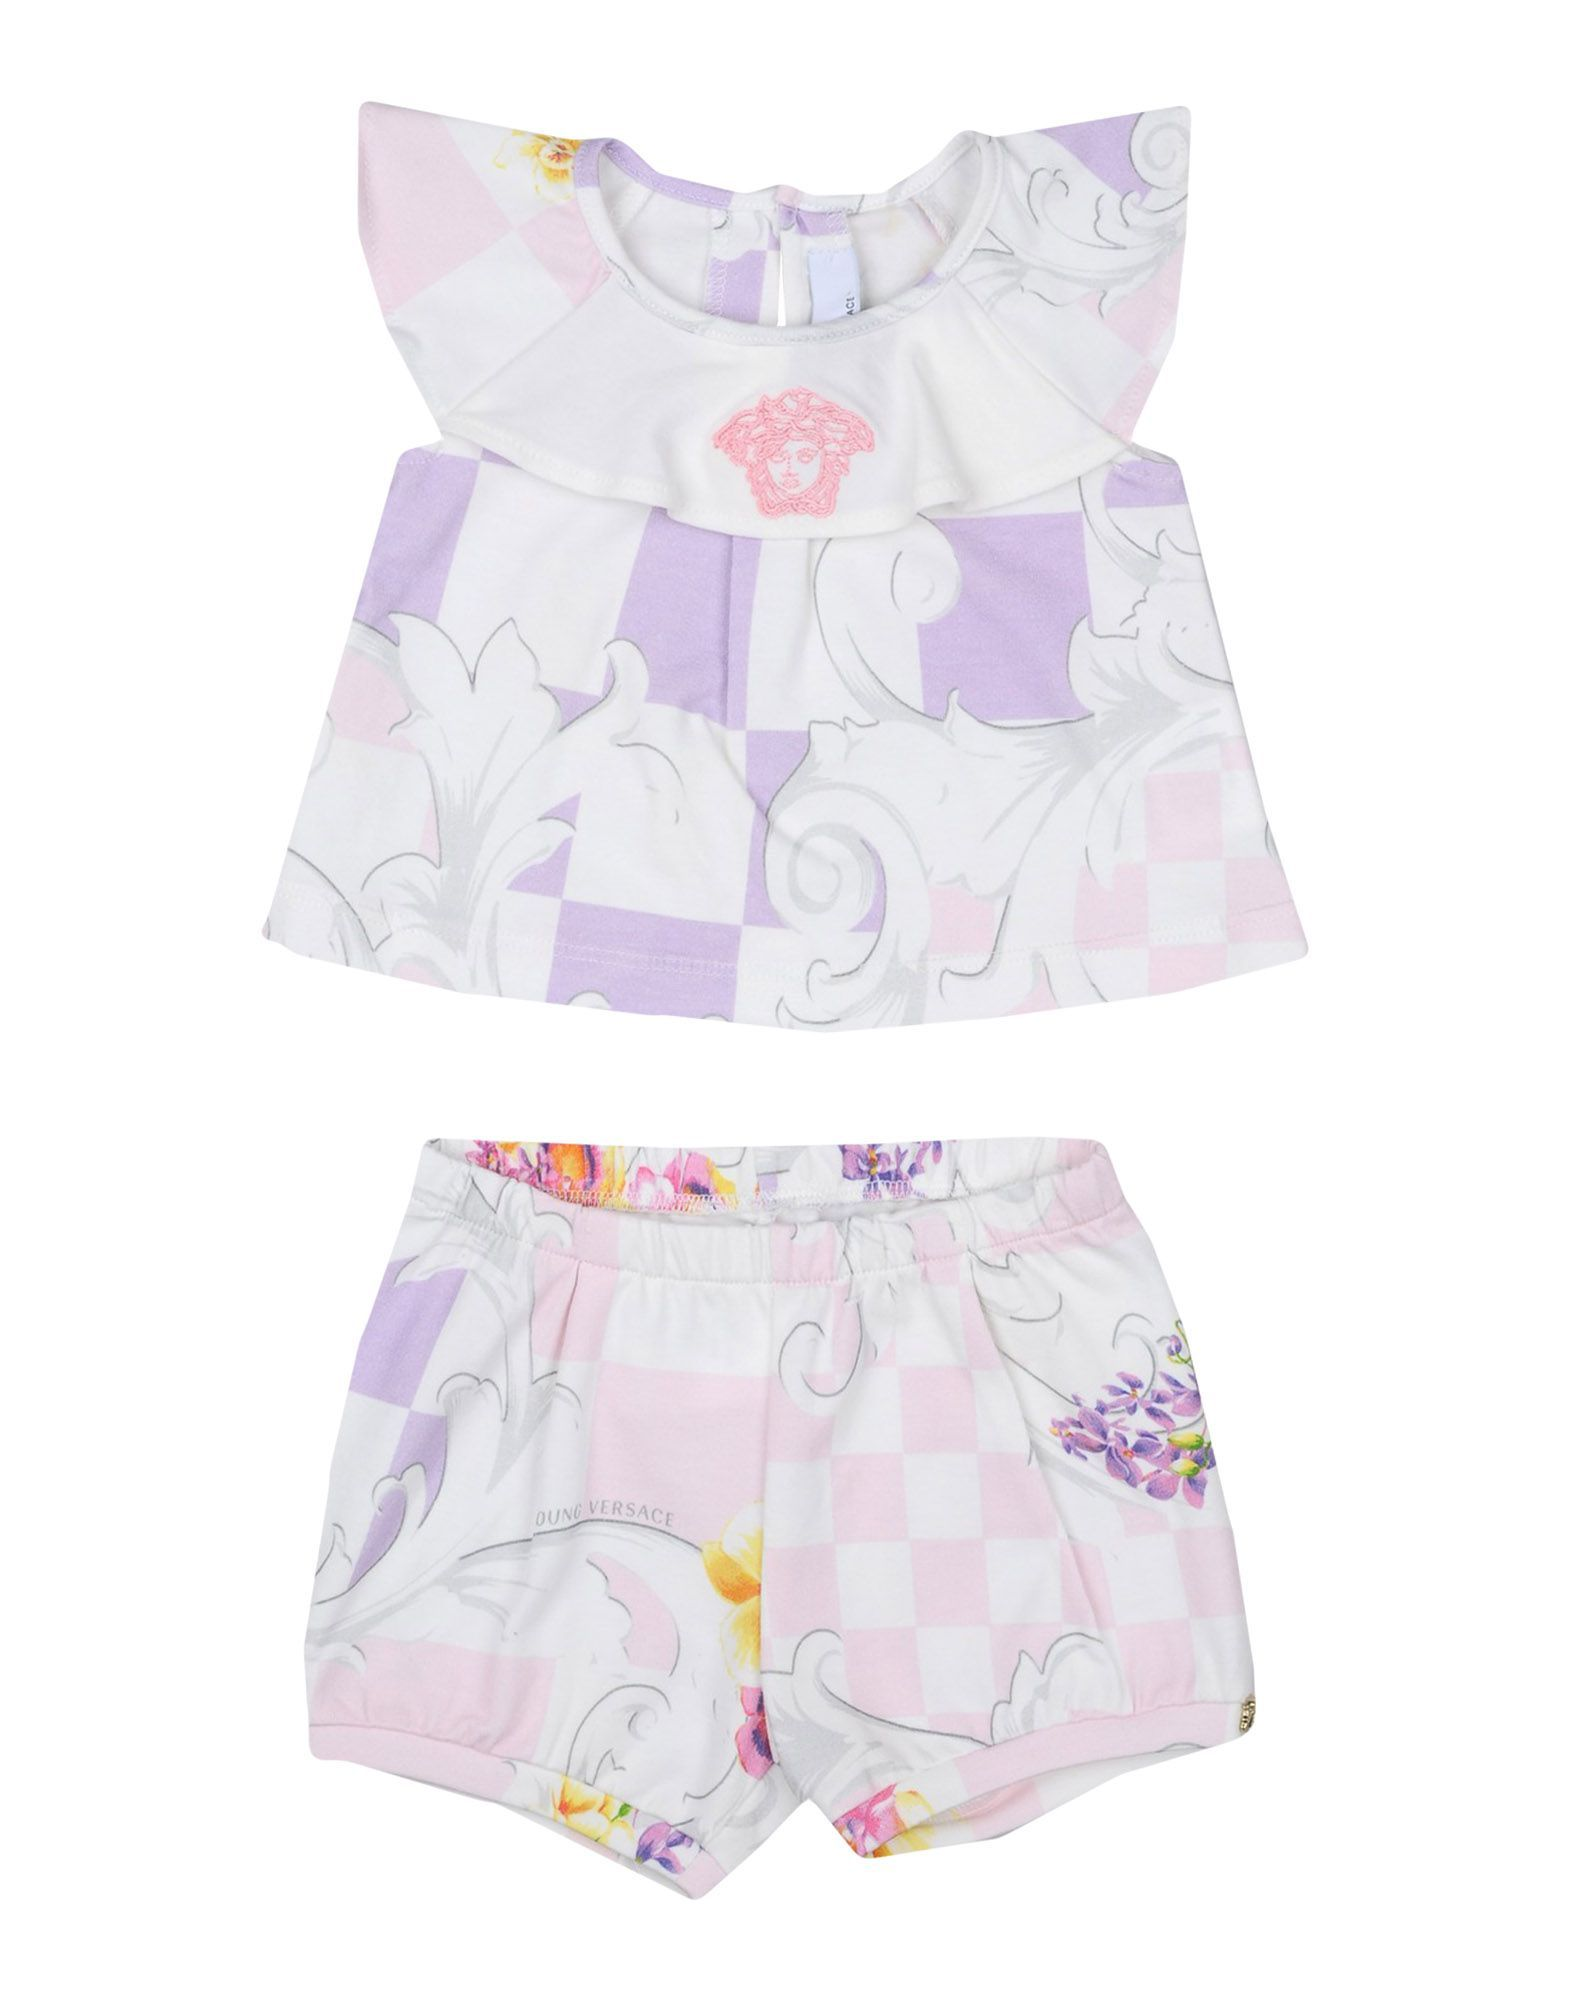 Versace Young Ivory Girl Cotton Set